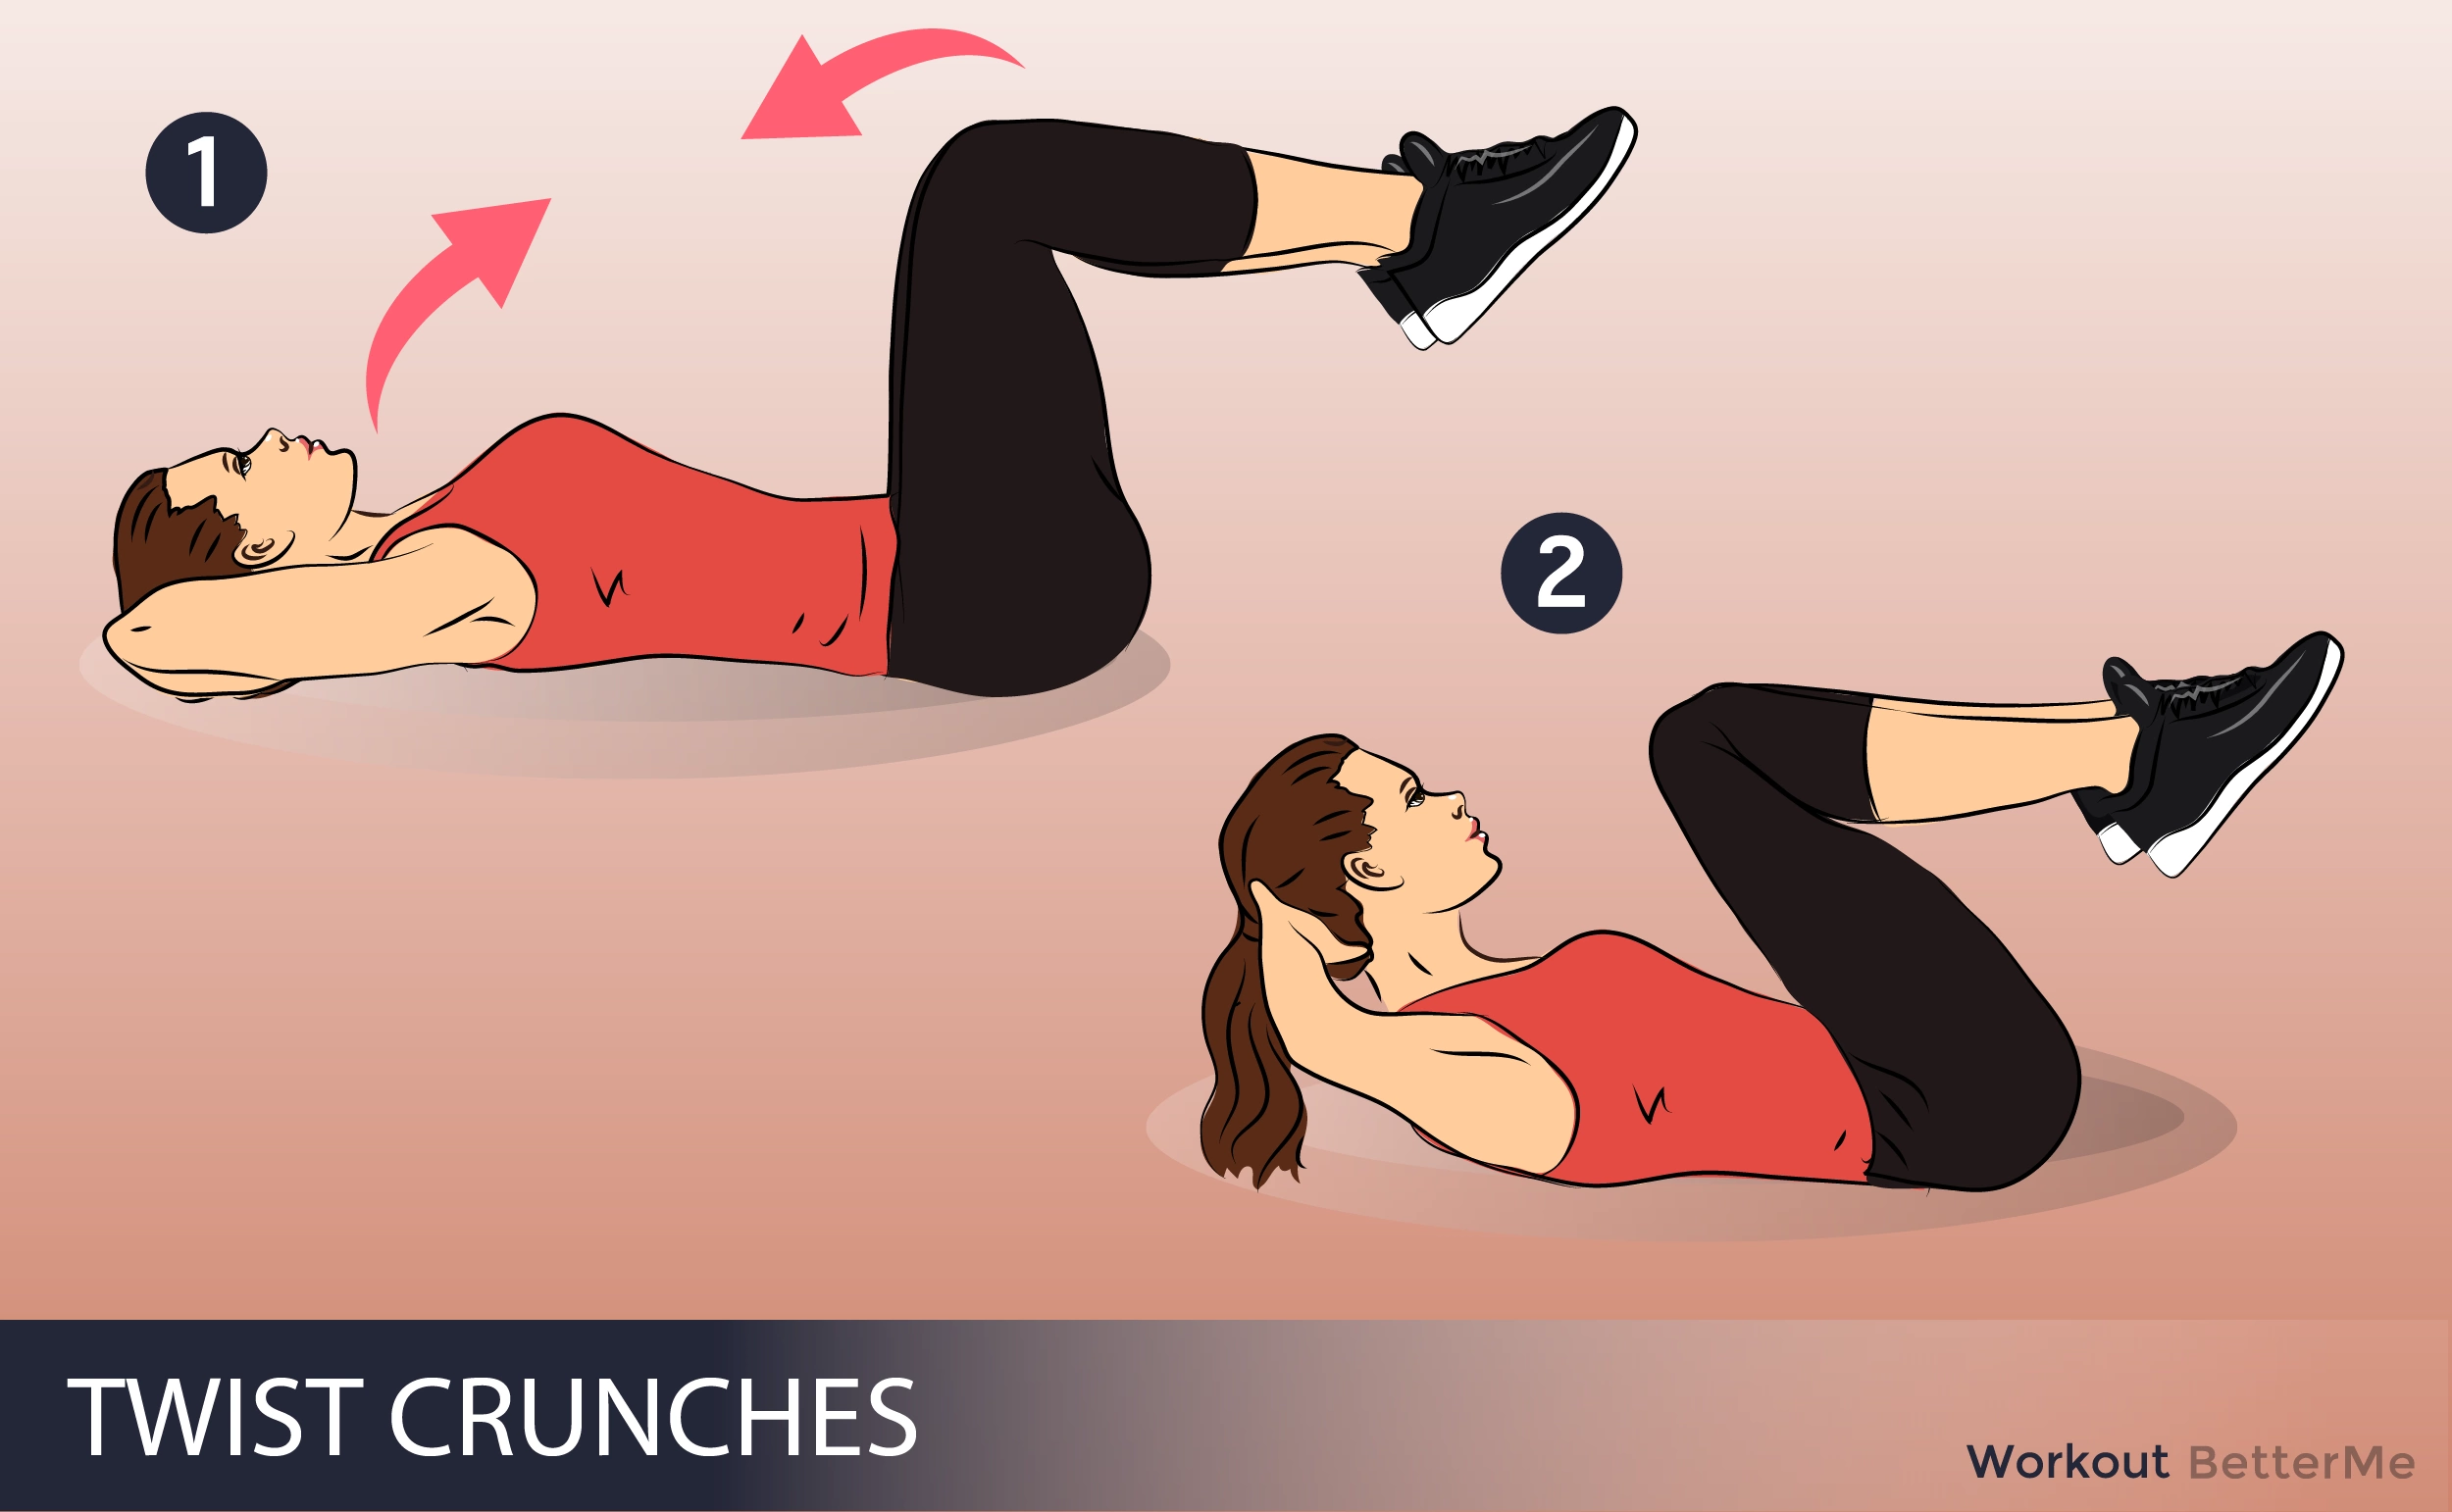 #10. Knee to elbow crunch